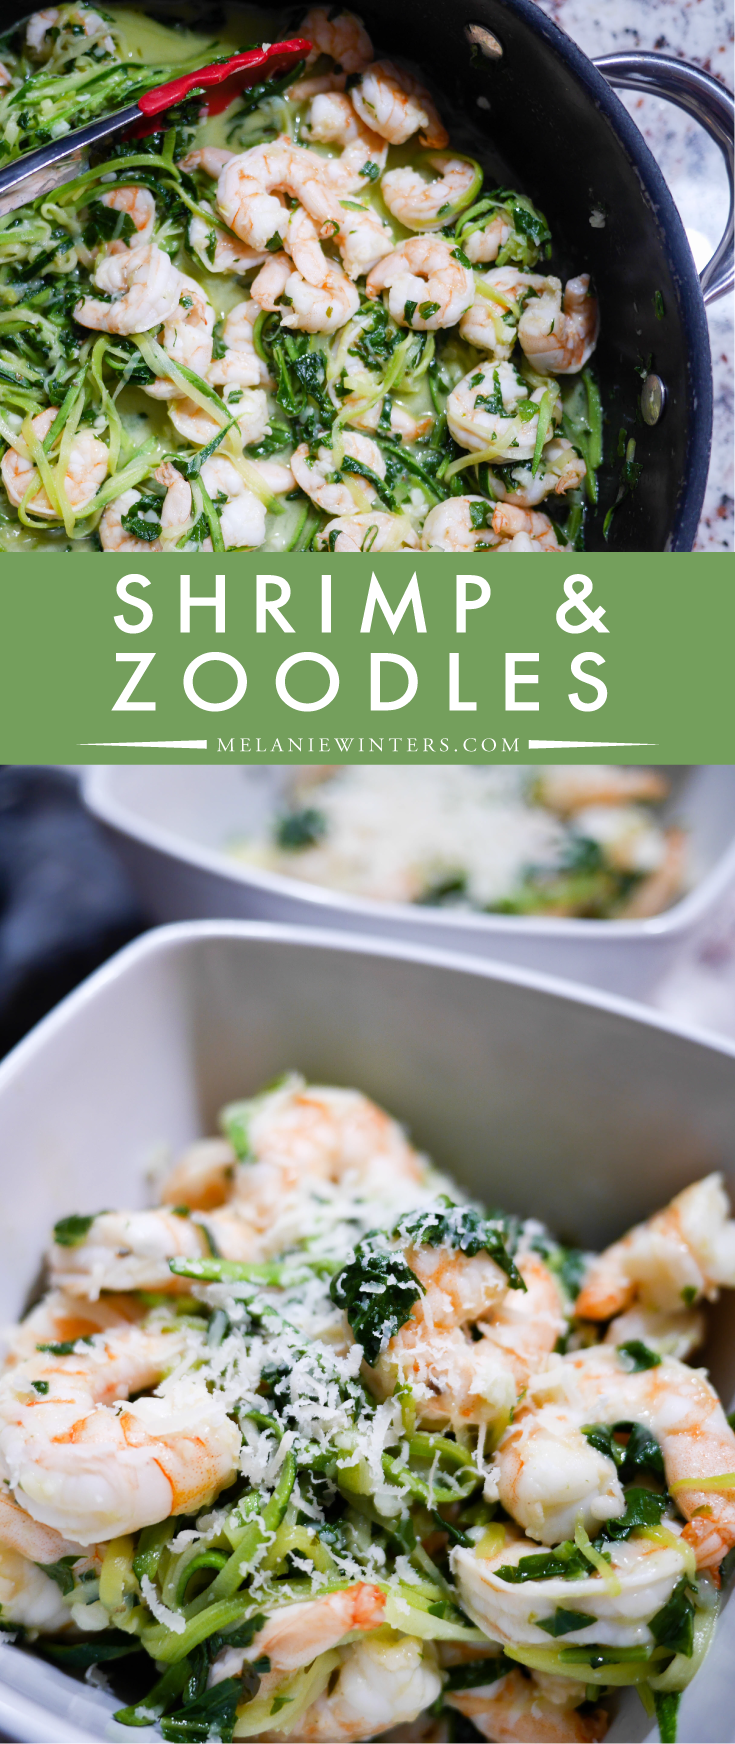 Ready in minutes, this light and delicious shrimp and zoodle dinner is the perfect weeknight meal.